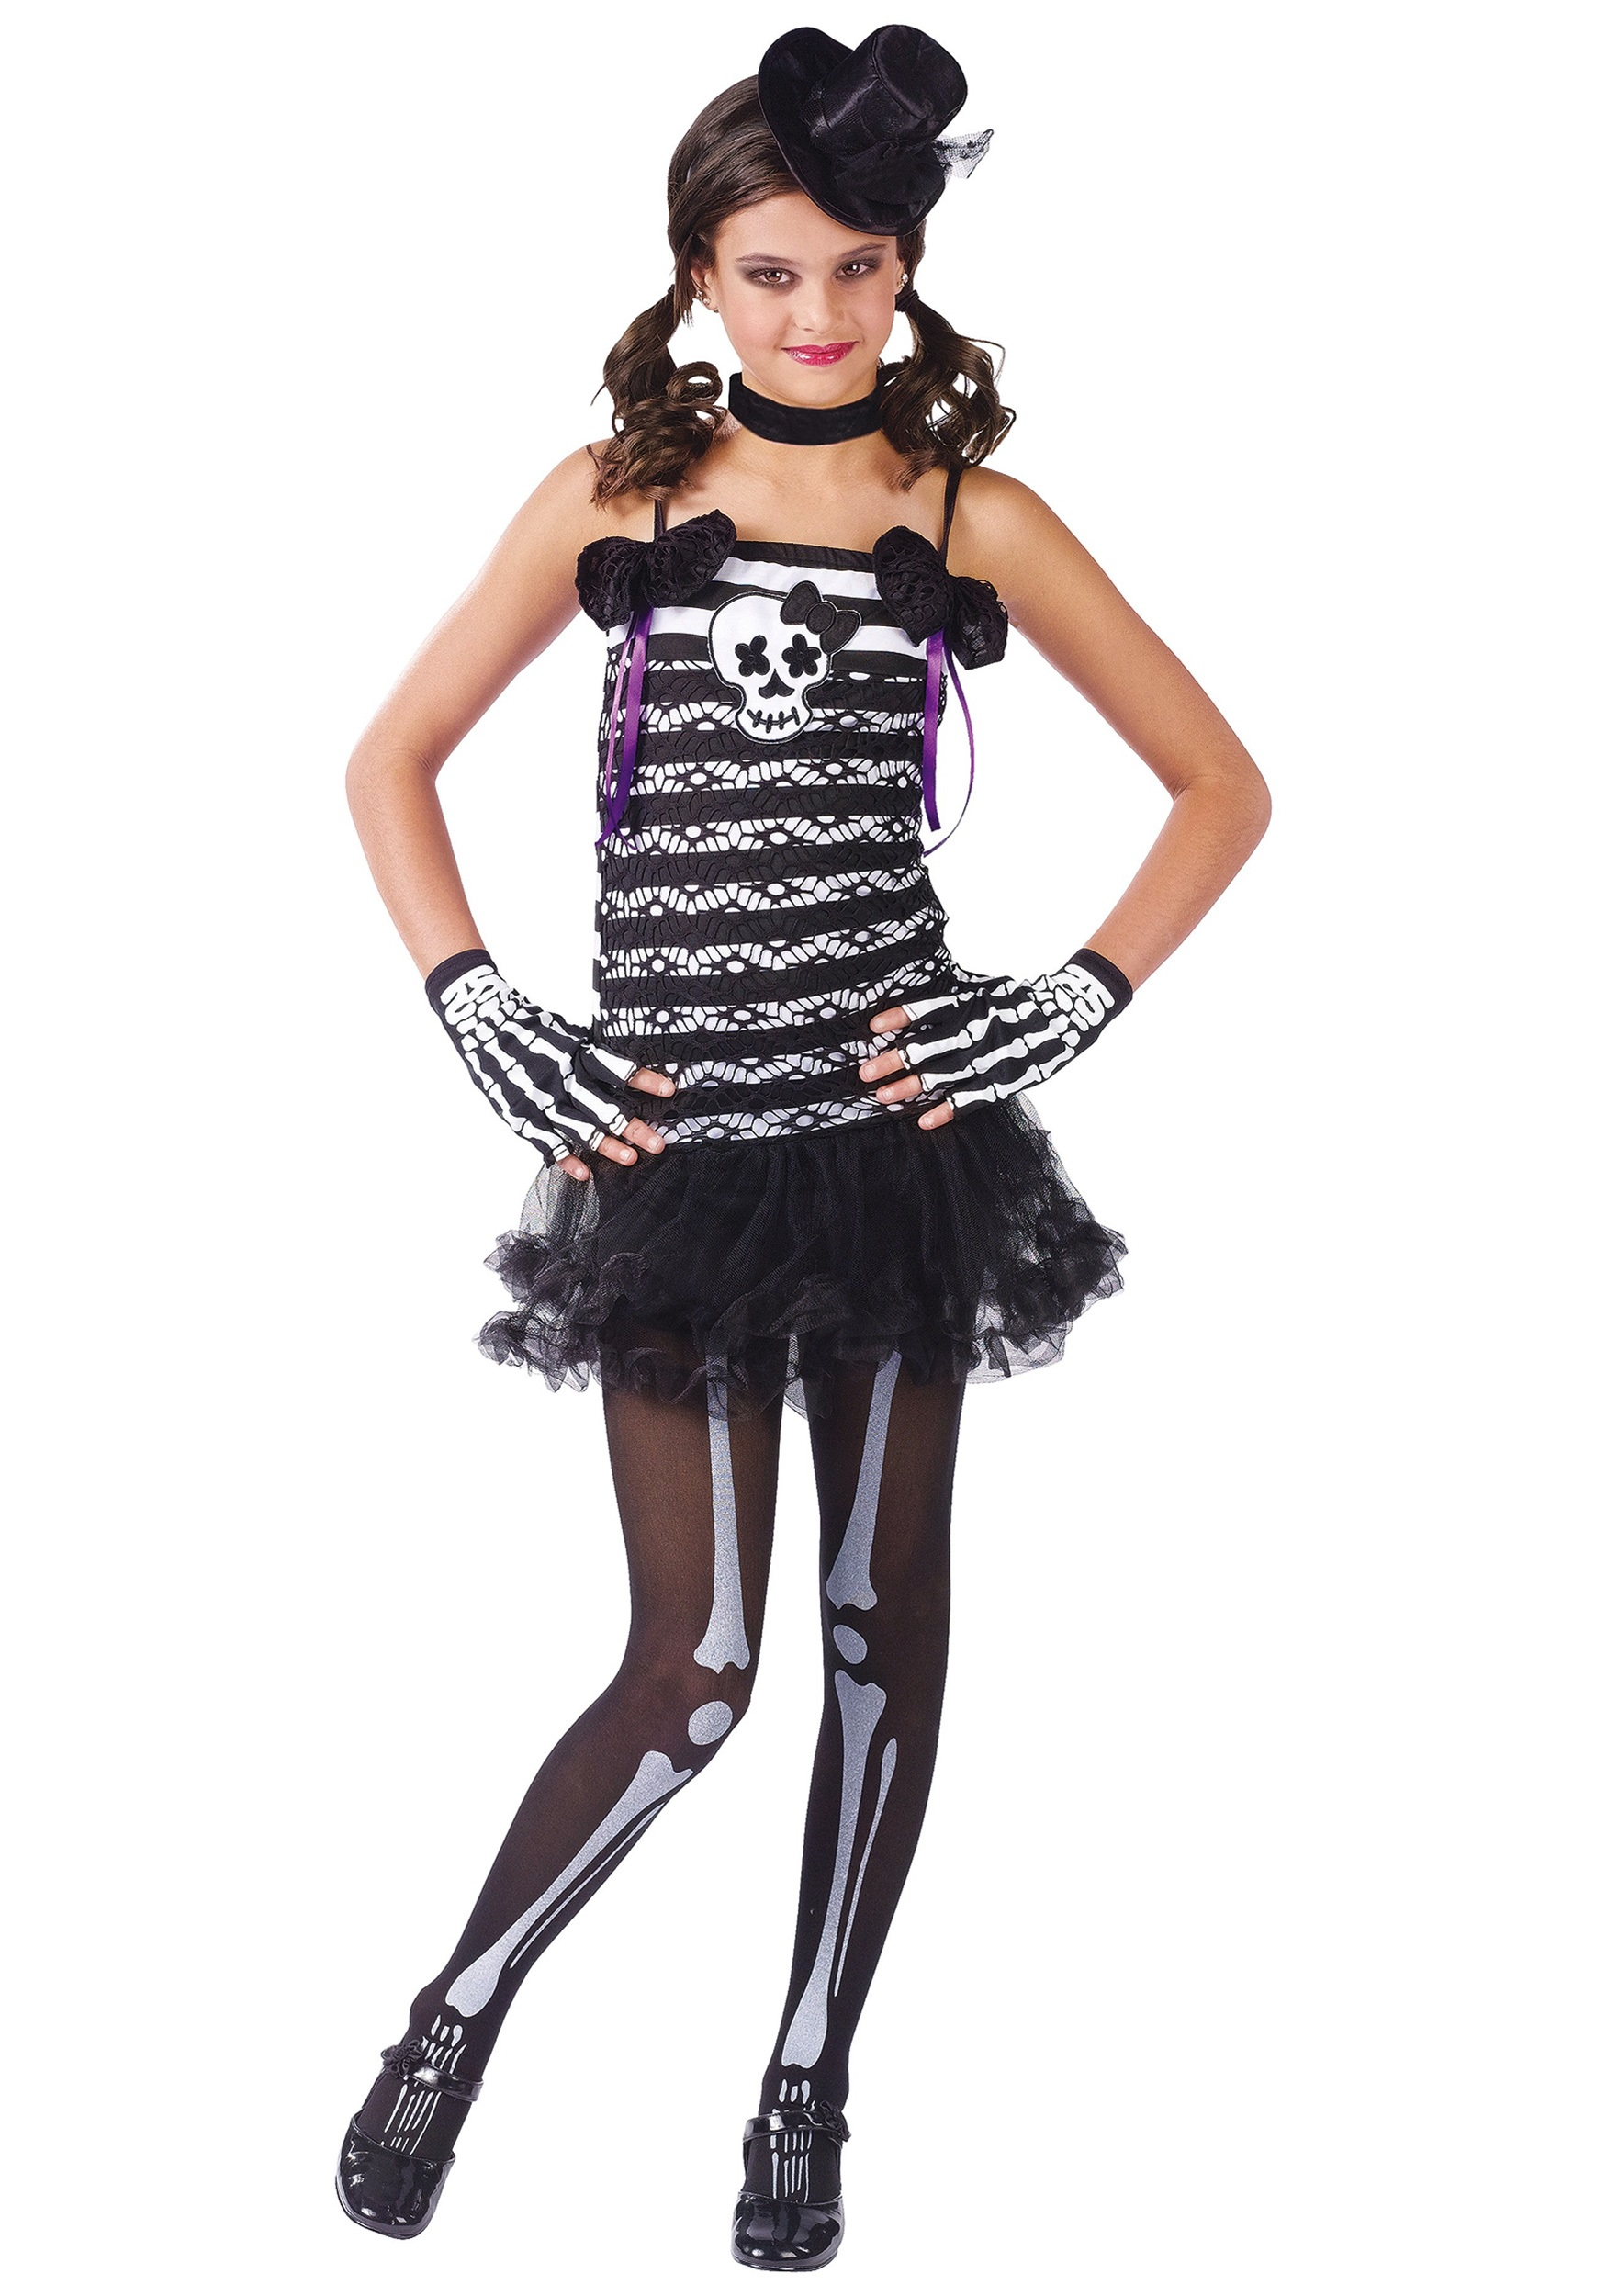 Girls Skeleton Costume  sc 1 st  Halloween Costumes & Girls Skeleton Costume - Halloween Costumes